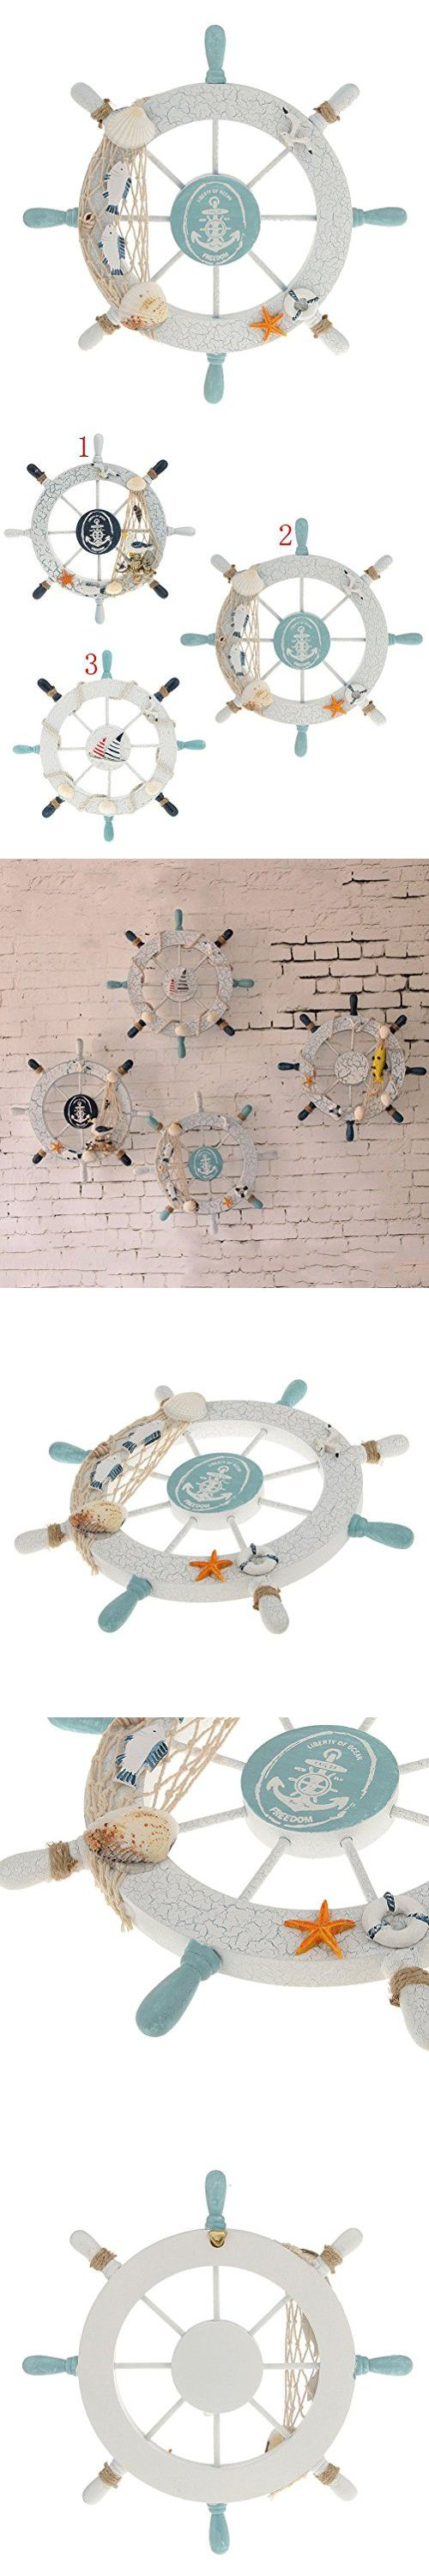 Tinksky Nautical Beach Wooden Boat Ship Steering Wheel Fishing Net Shell Home Wall Christmas Decoration - Swim ring